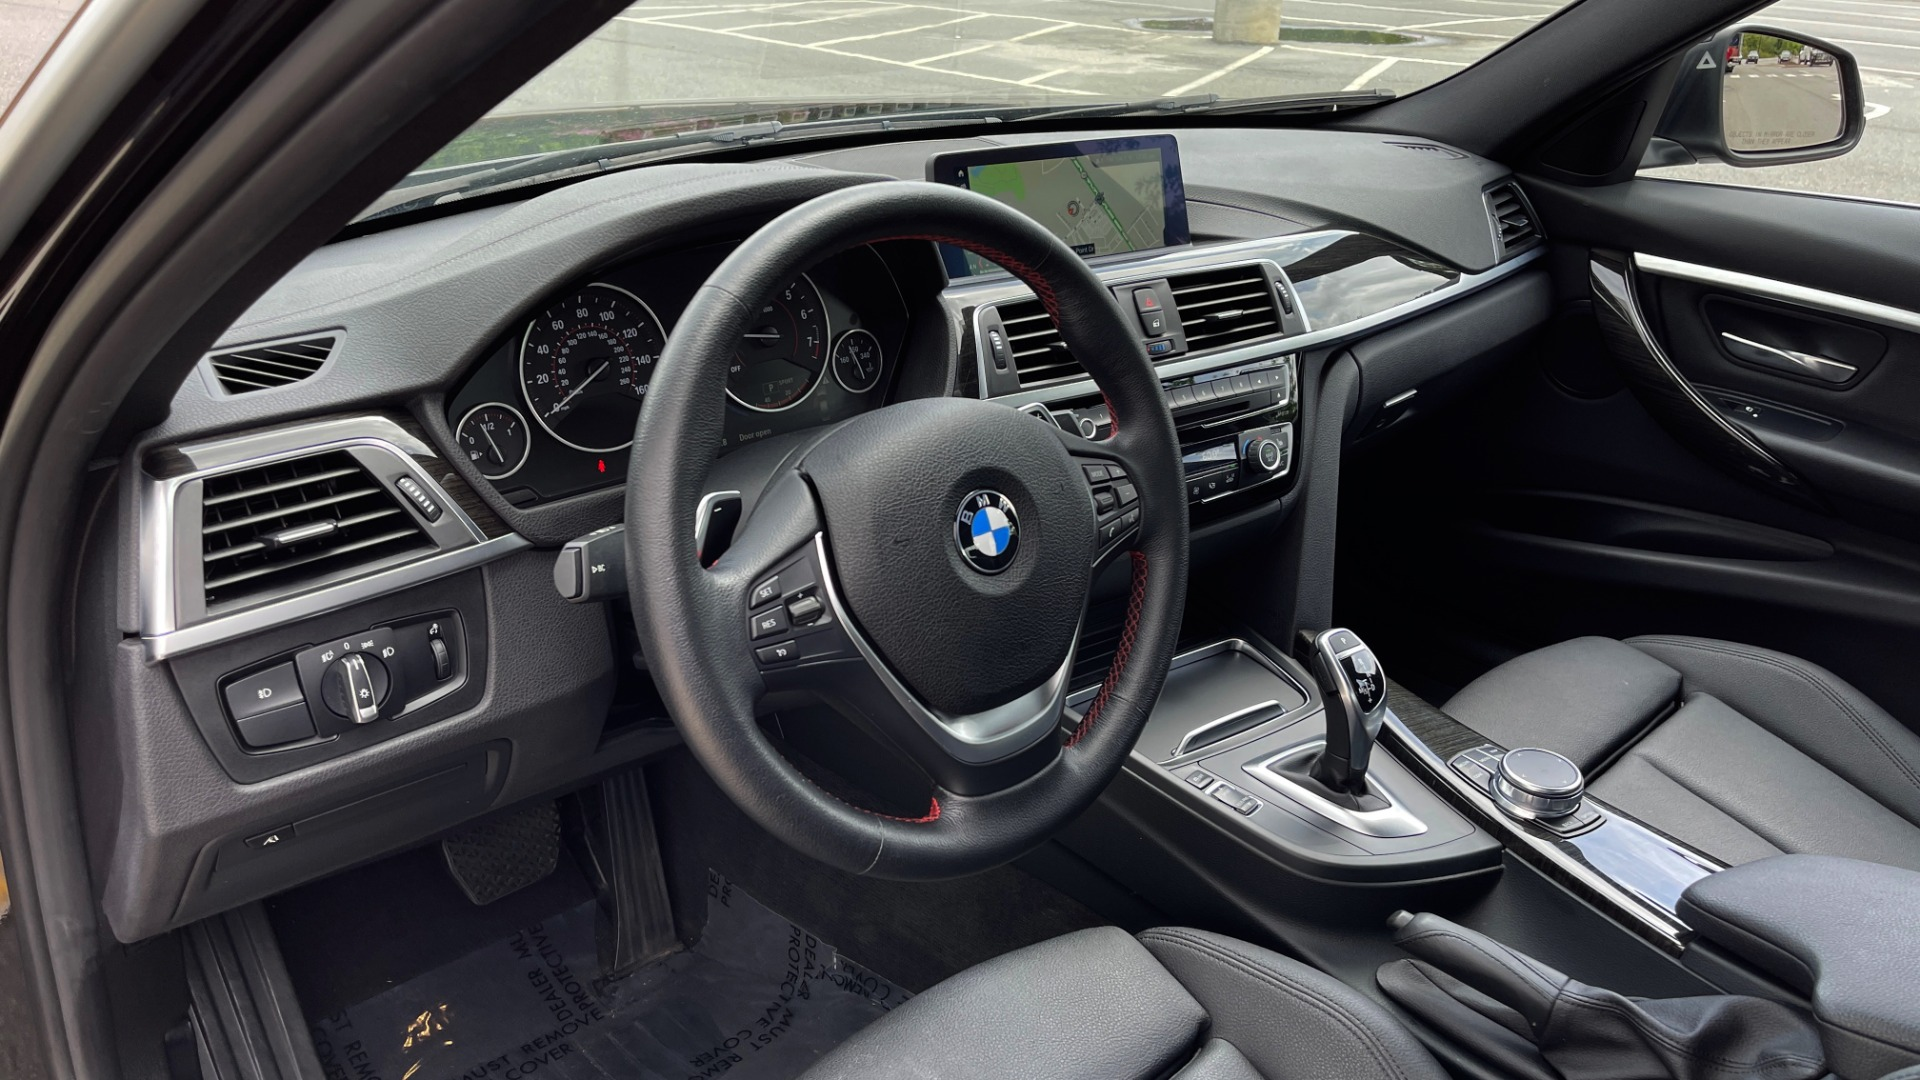 Used 2018 BMW 3 SERIES 330IXDRIVE / NAV / CONV PKG / ABSD / SUNROOF / REARVIEW for sale $29,599 at Formula Imports in Charlotte NC 28227 25